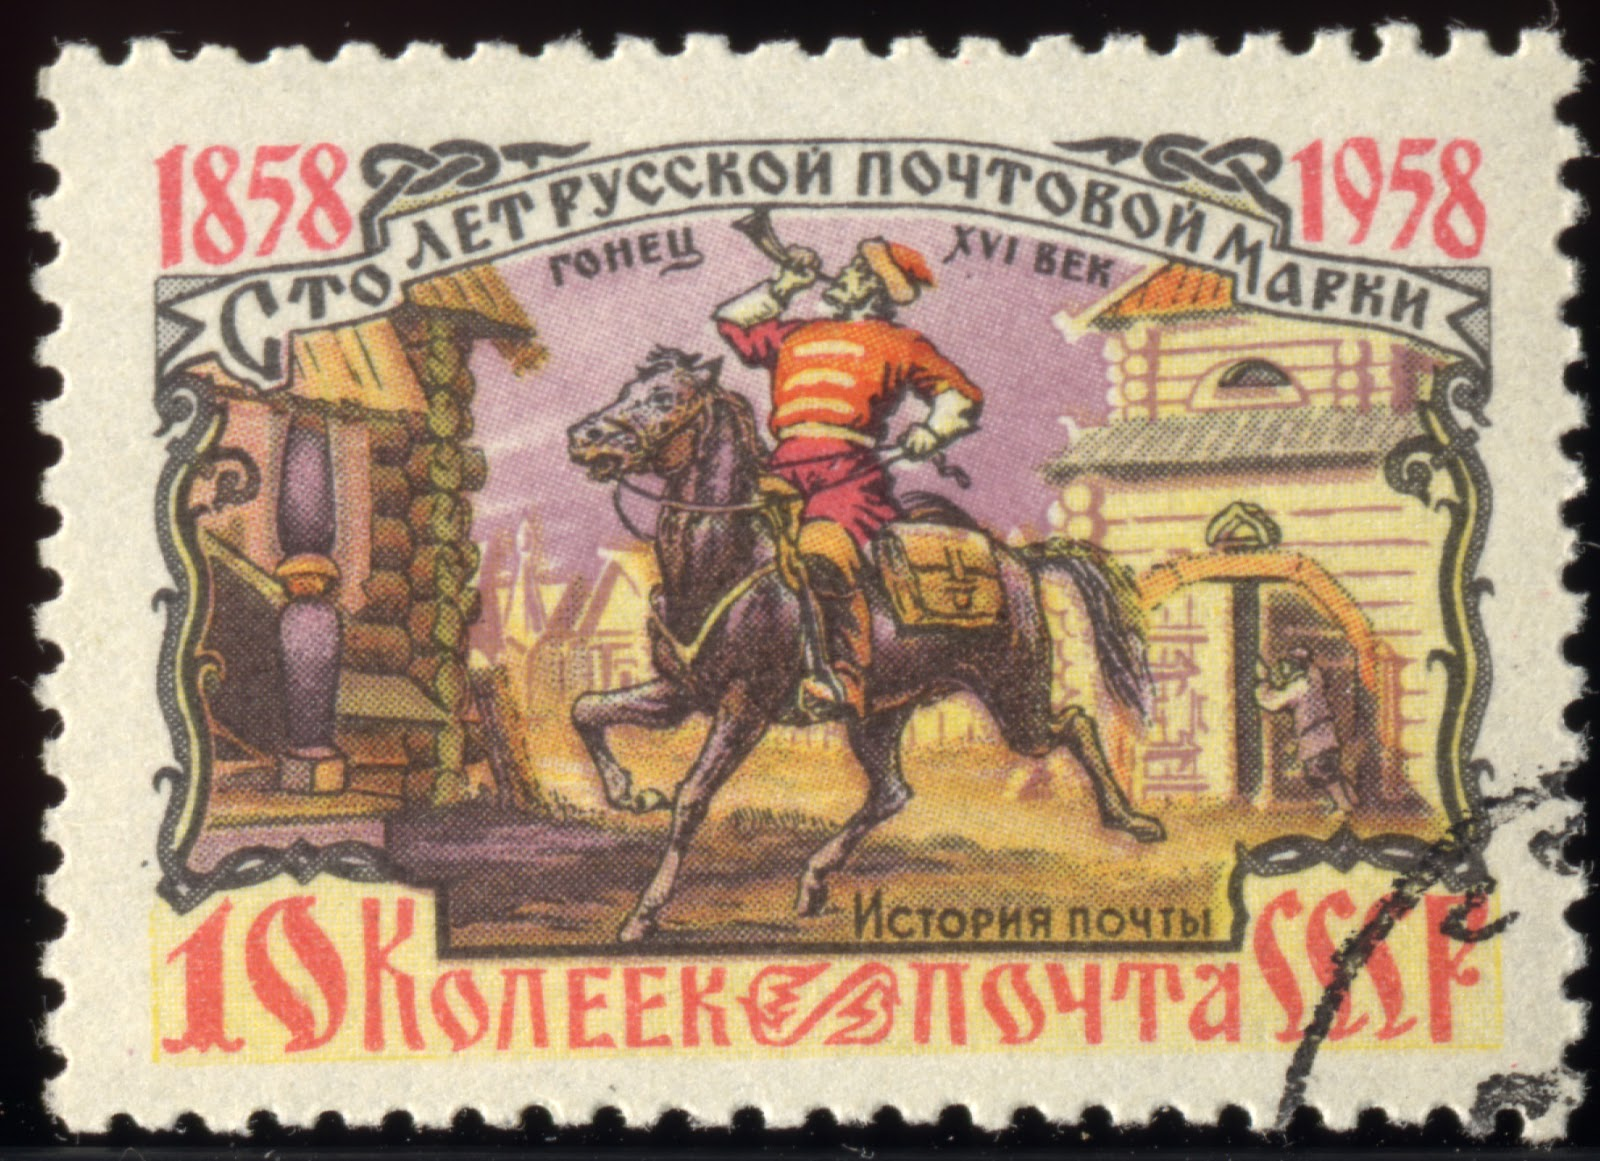 Postcardy The Postcard Explorer Centenary Of The Russian